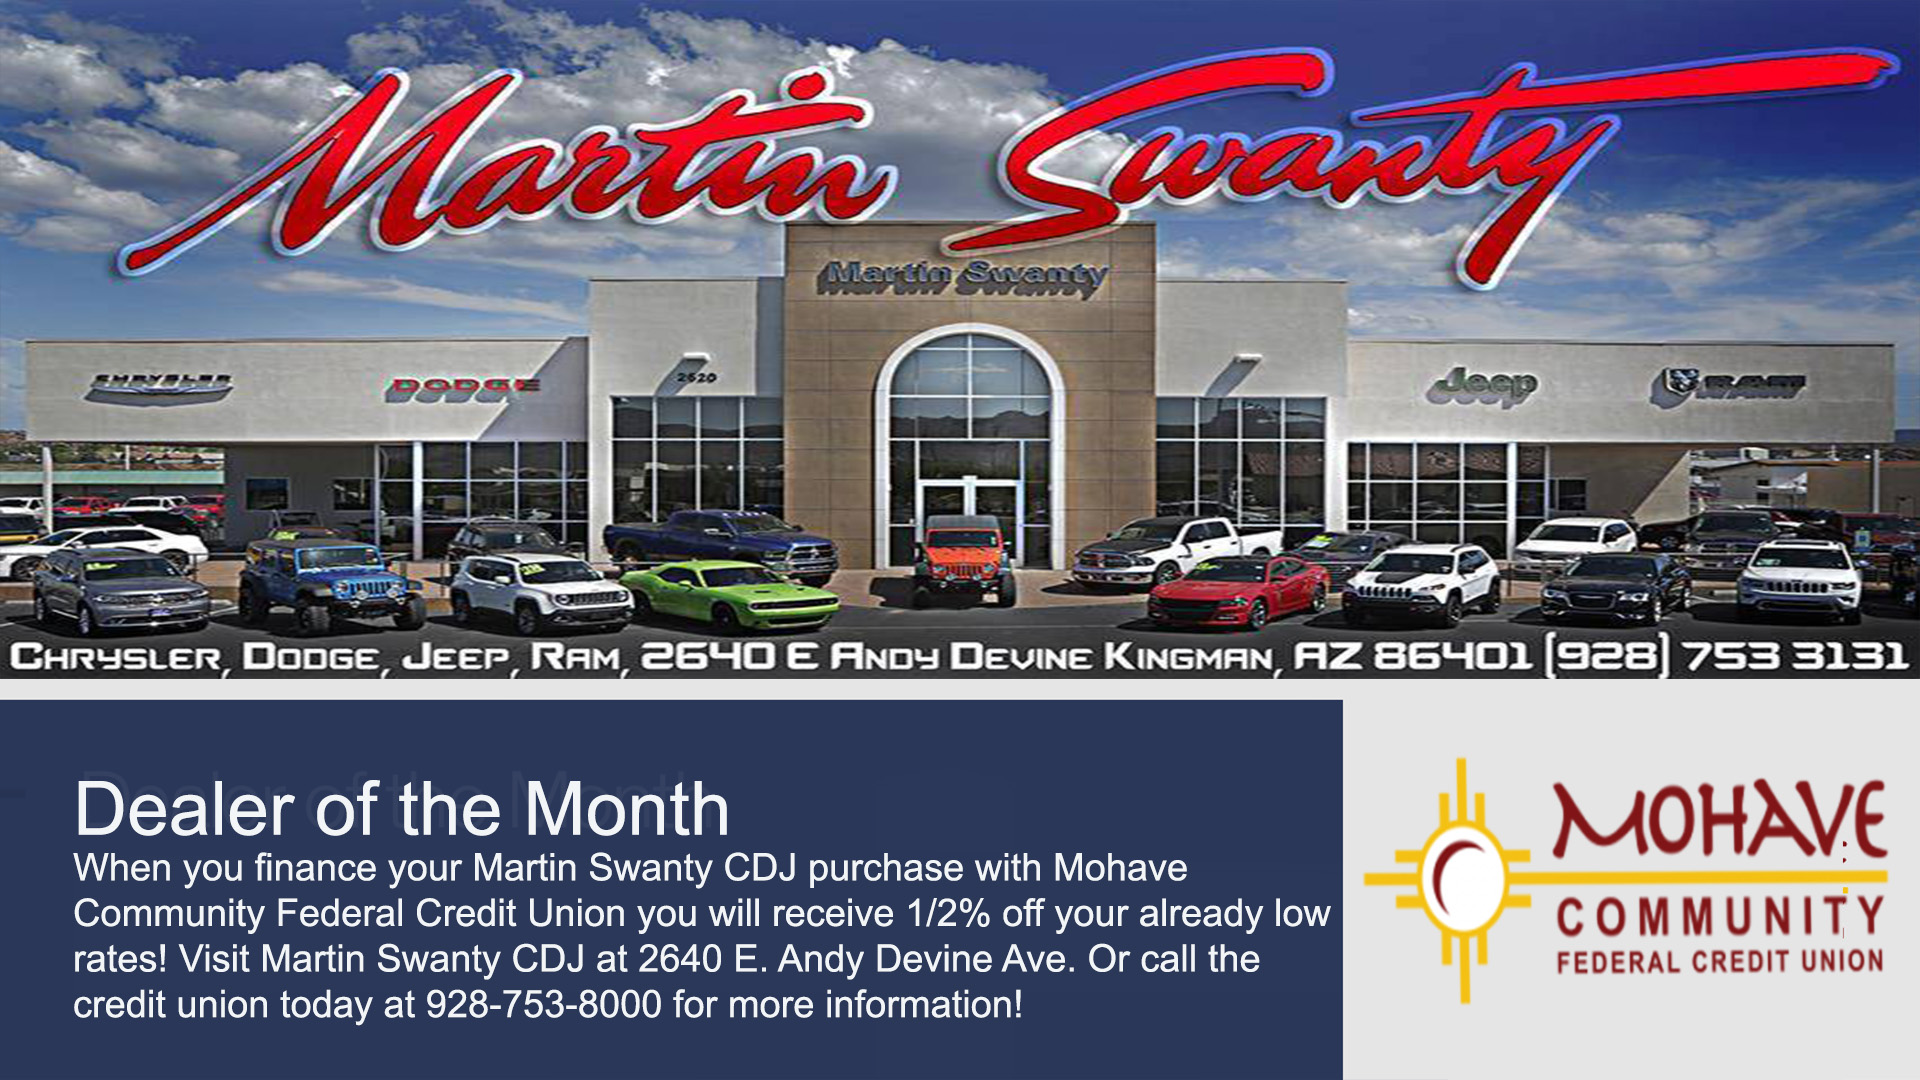 November 1st - 30th. Martin Swanty Chrysler Dodge Jeep is our Dealer of the Month! When you finance your Martin Swanty CDJ purchase with Mohave Federal Credit Union, you will receive an additional 1/2% off your already low rates! Call 928-753-8000 for more information. Based on approved credit. Some restrictions may apply.